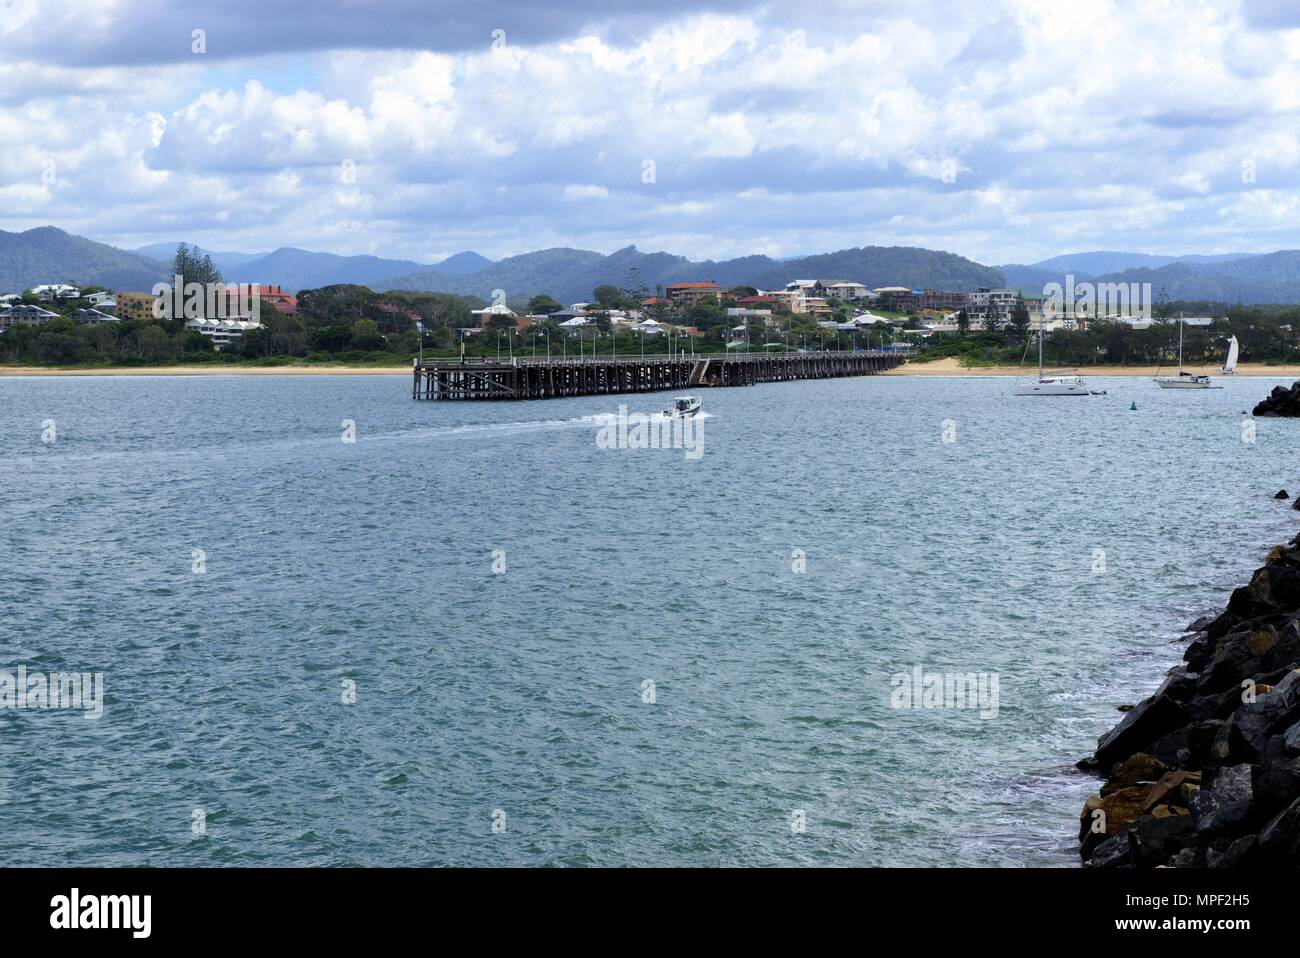 21 April 2018. Speed boat in water going towards jetty at Jetty Beach in Australian city of Coffs Harbour. Wide view of jetty in Australia. - Stock Image